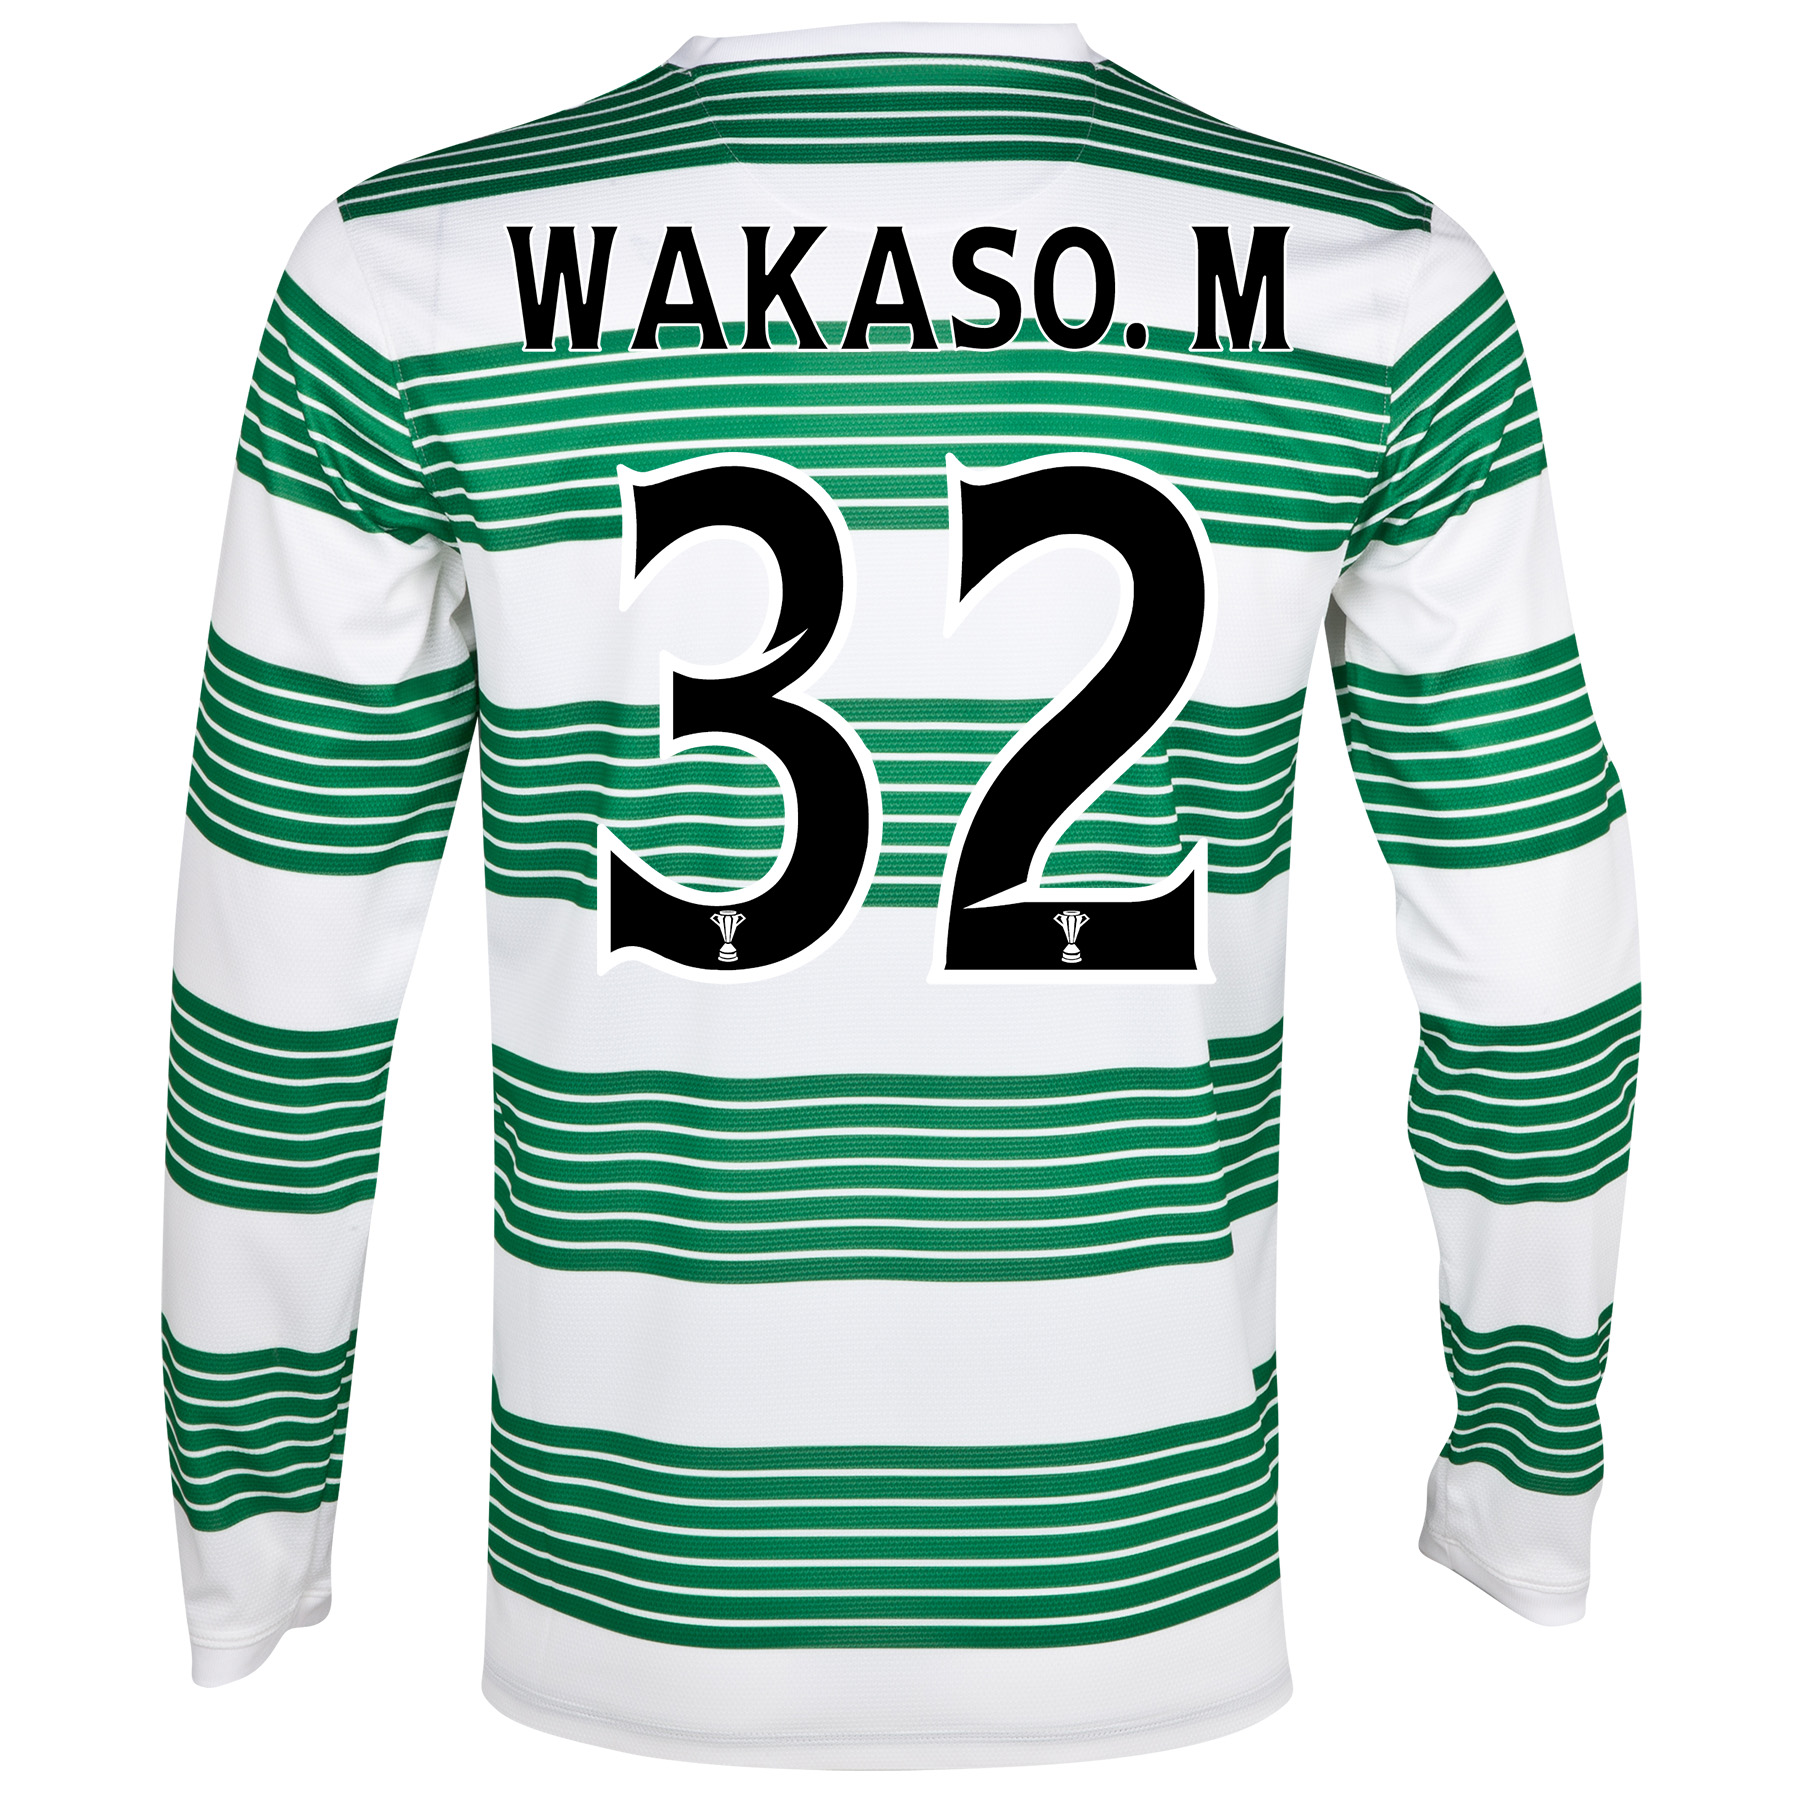 Celtic Home Shirt 2013/15 - L/S- With Sponsor with Wakaso.M 32 printing